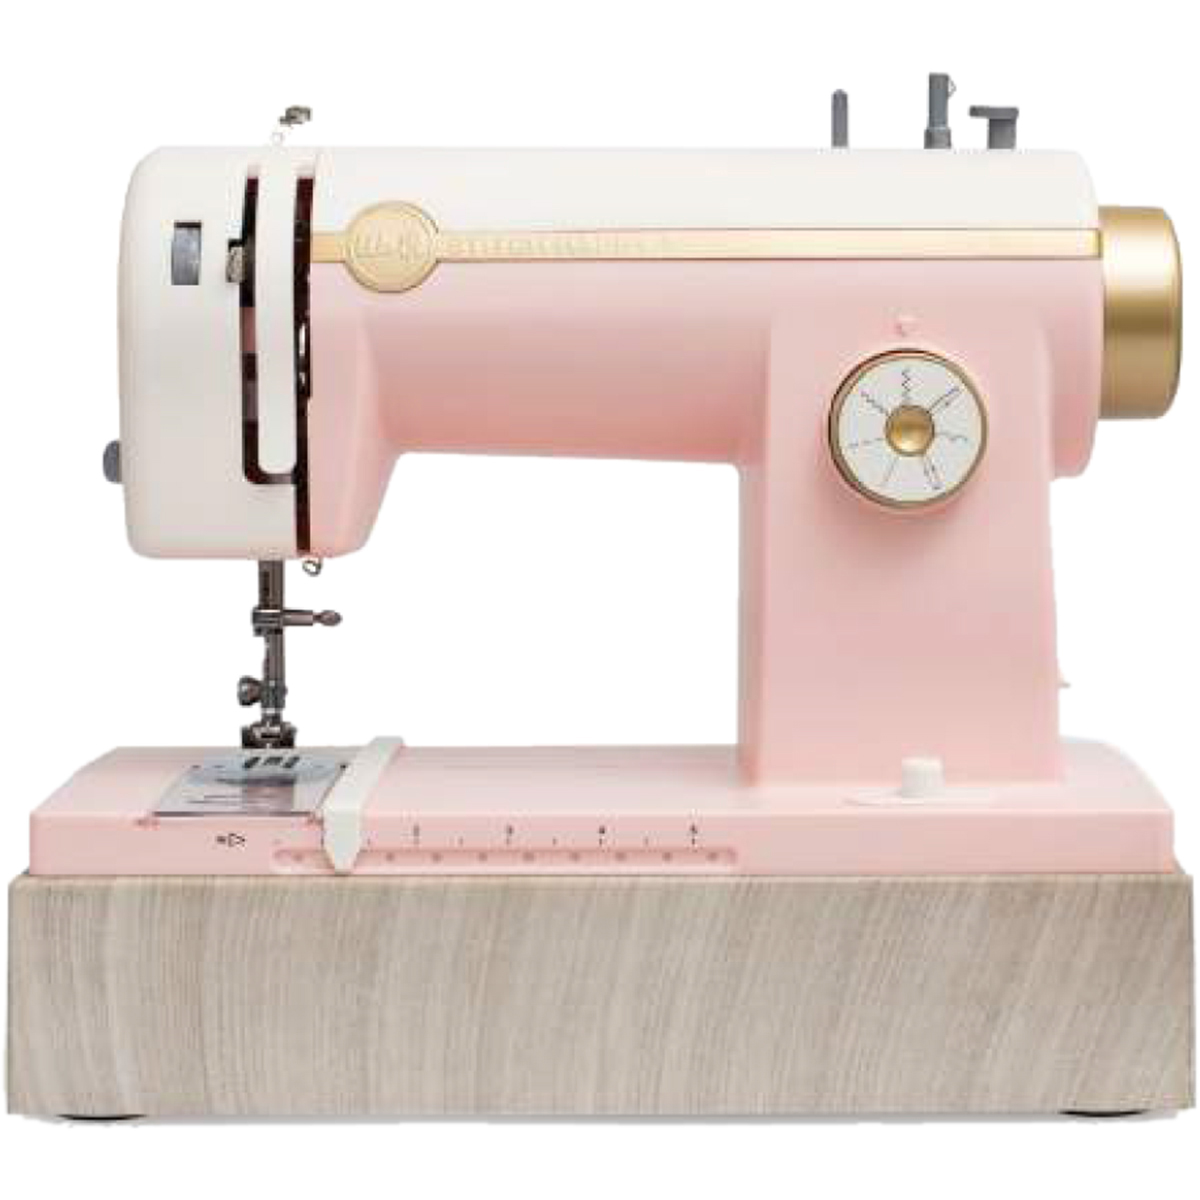 Stitch Happy Sewing Machine by We R Memory Keepers | Pink